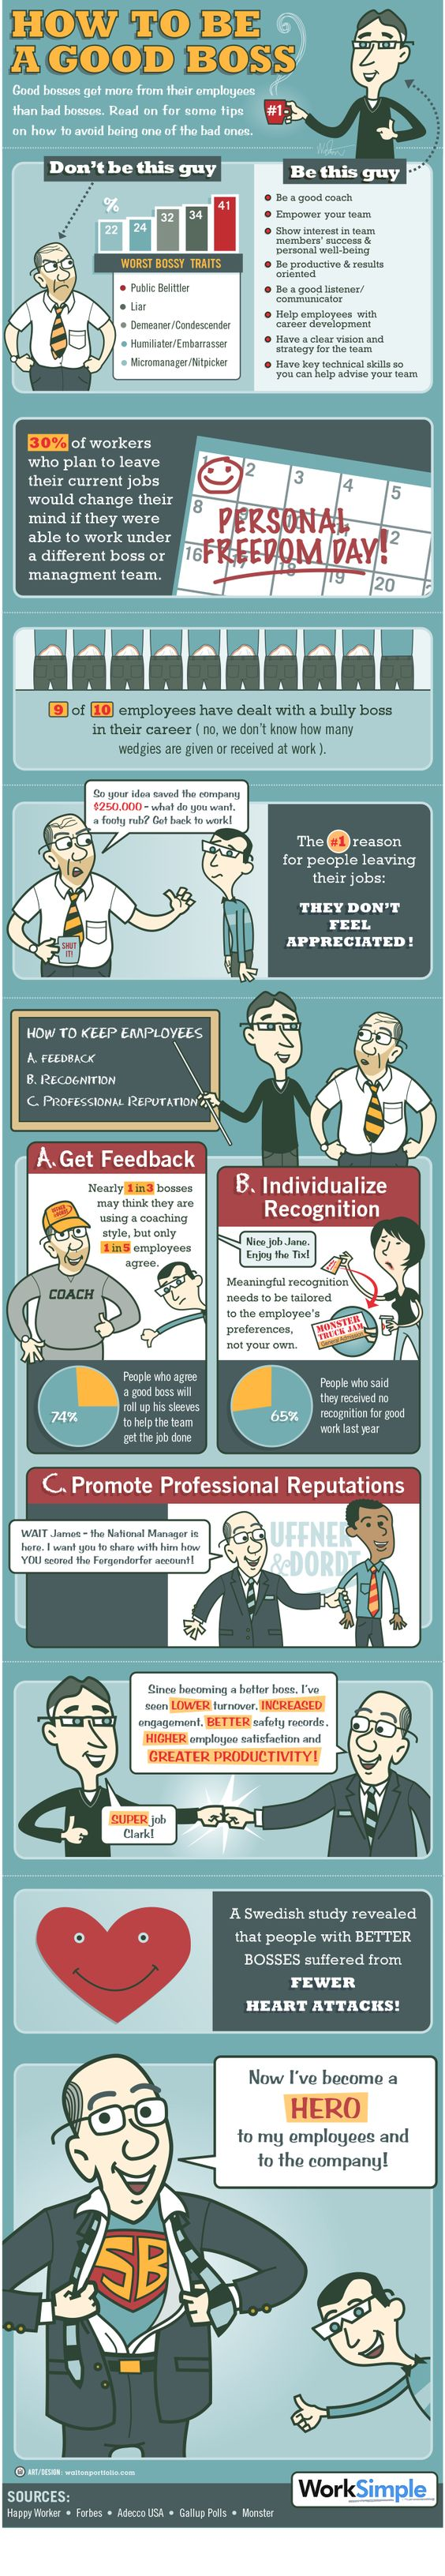 infographic how to be a good boss management tips bad boss and how to be a good boss not that you need this but it makes interesting